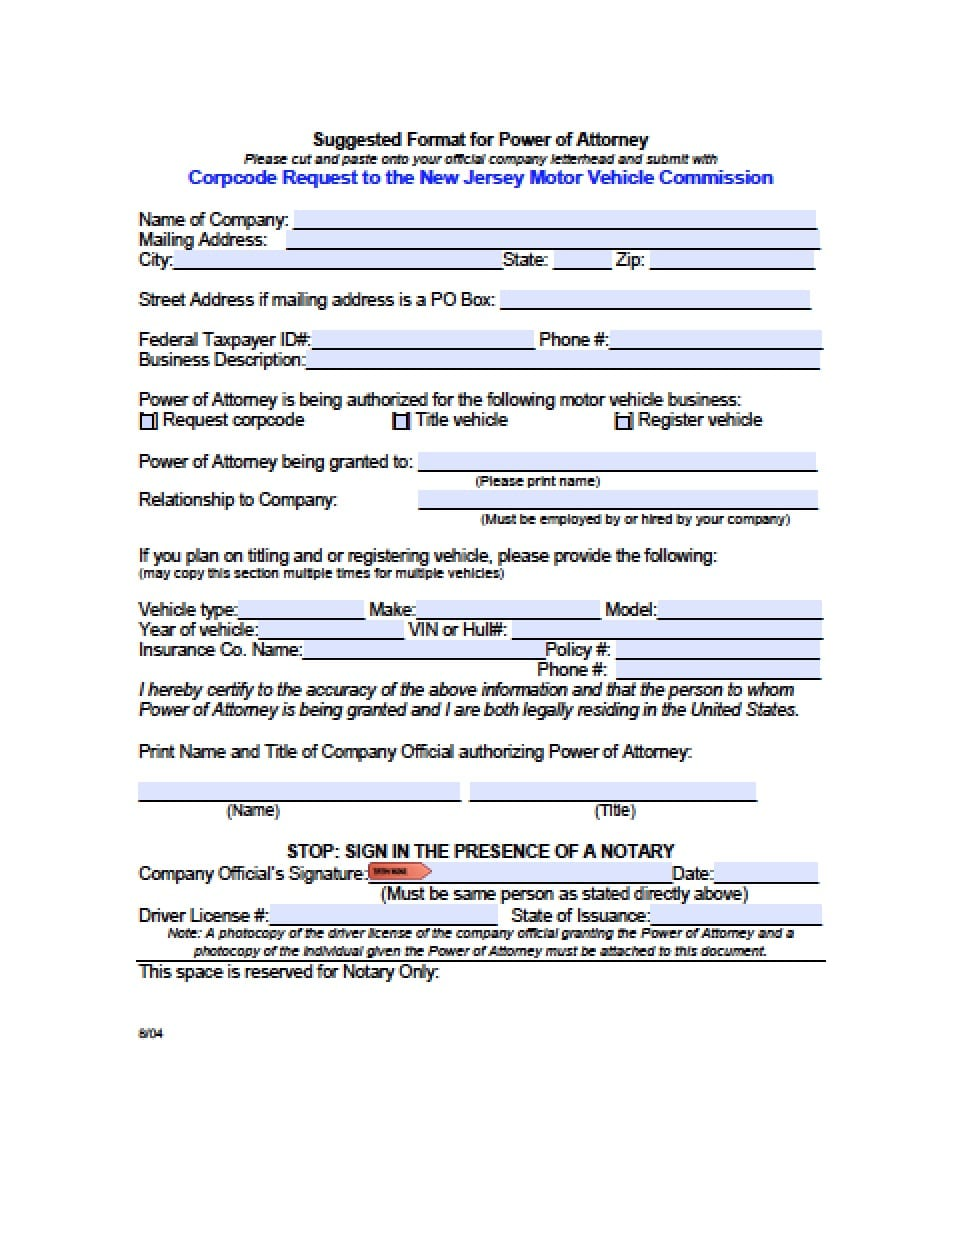 New Jersey Vehicle Power of Attorney Form - Power of